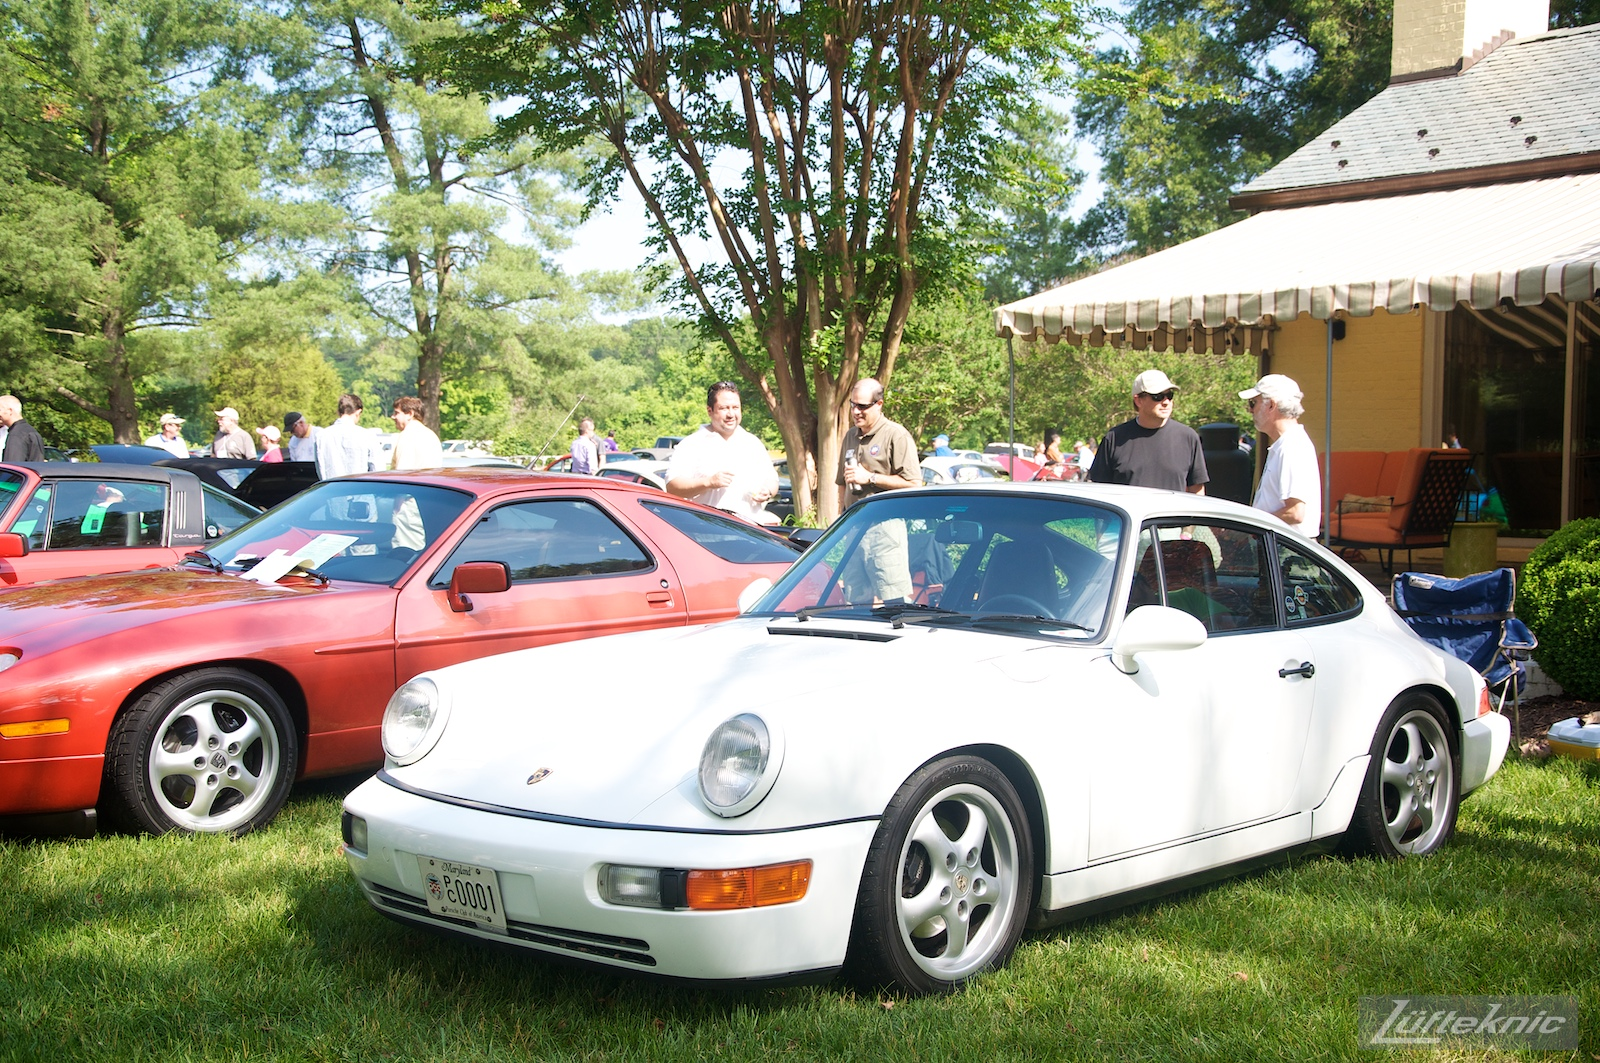 Clean white 964 coupe at the Richmond Porsche Meet.